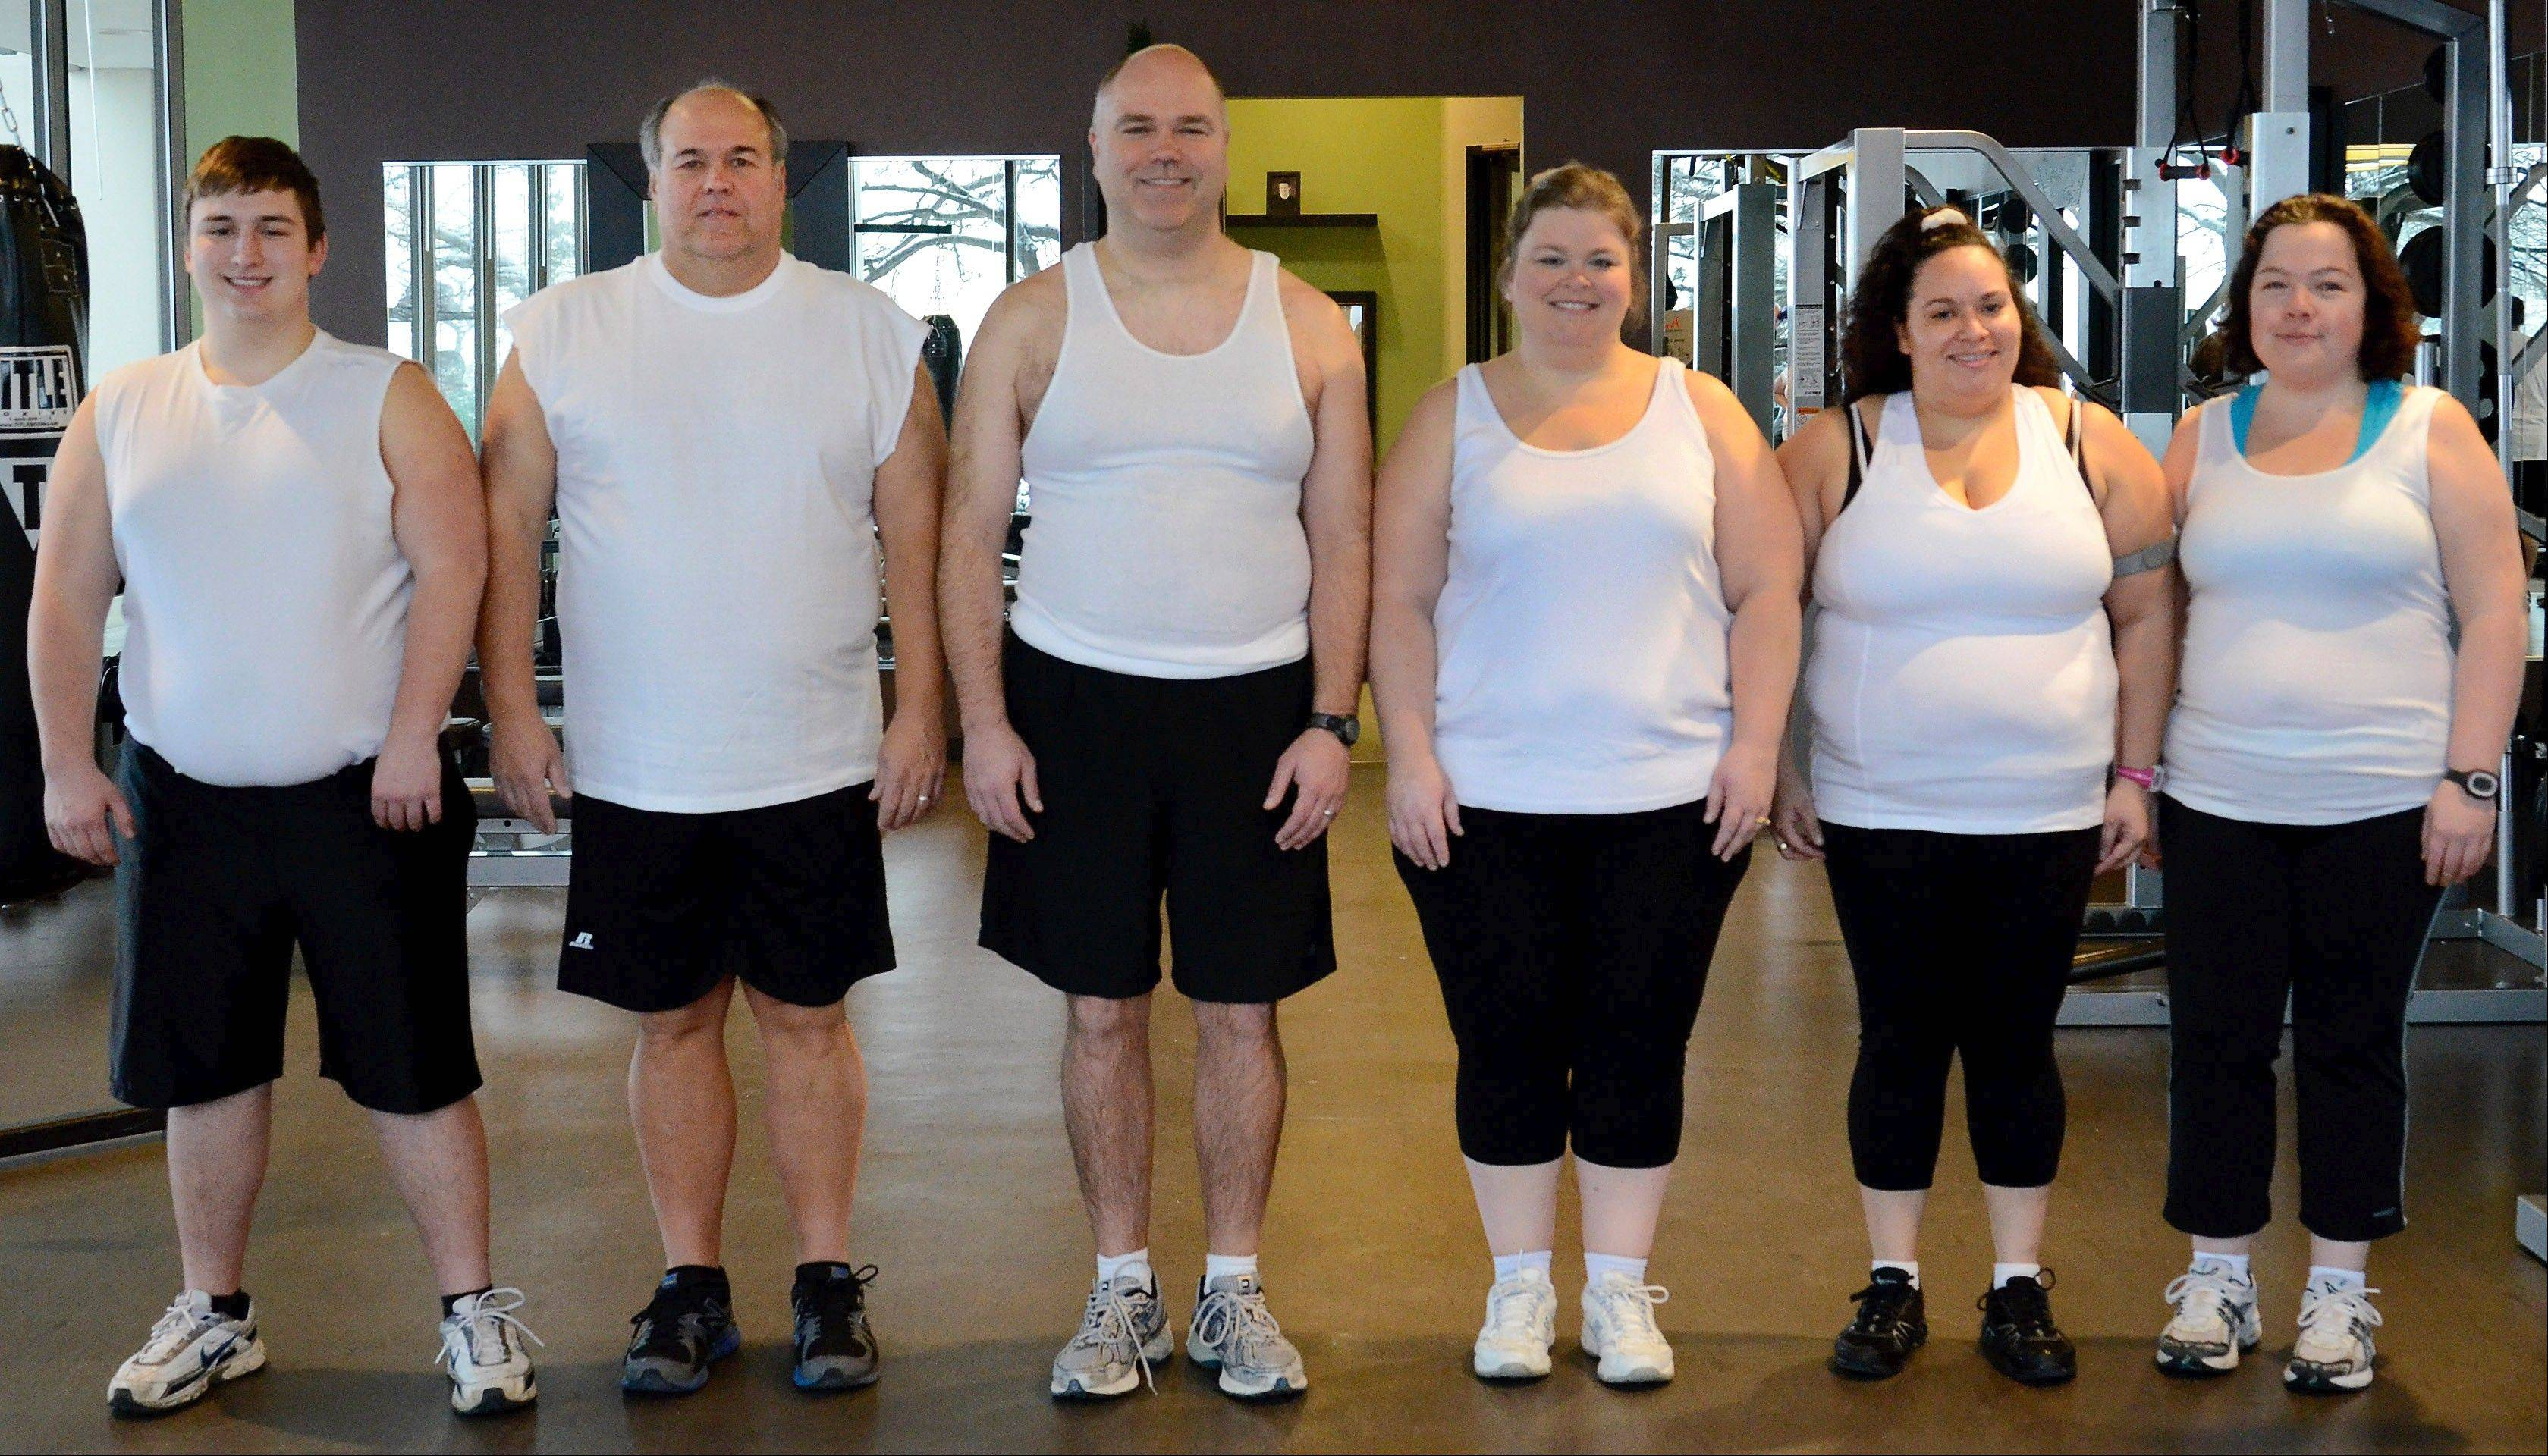 2013 Fittest Loser Challenge participants, before starting their journey, from left, Joe Gundling, Mike Paulo, Greg Moehrlin, Megan McCarthy-Cook, Marianne Costales-Roman and Karen Castillo.